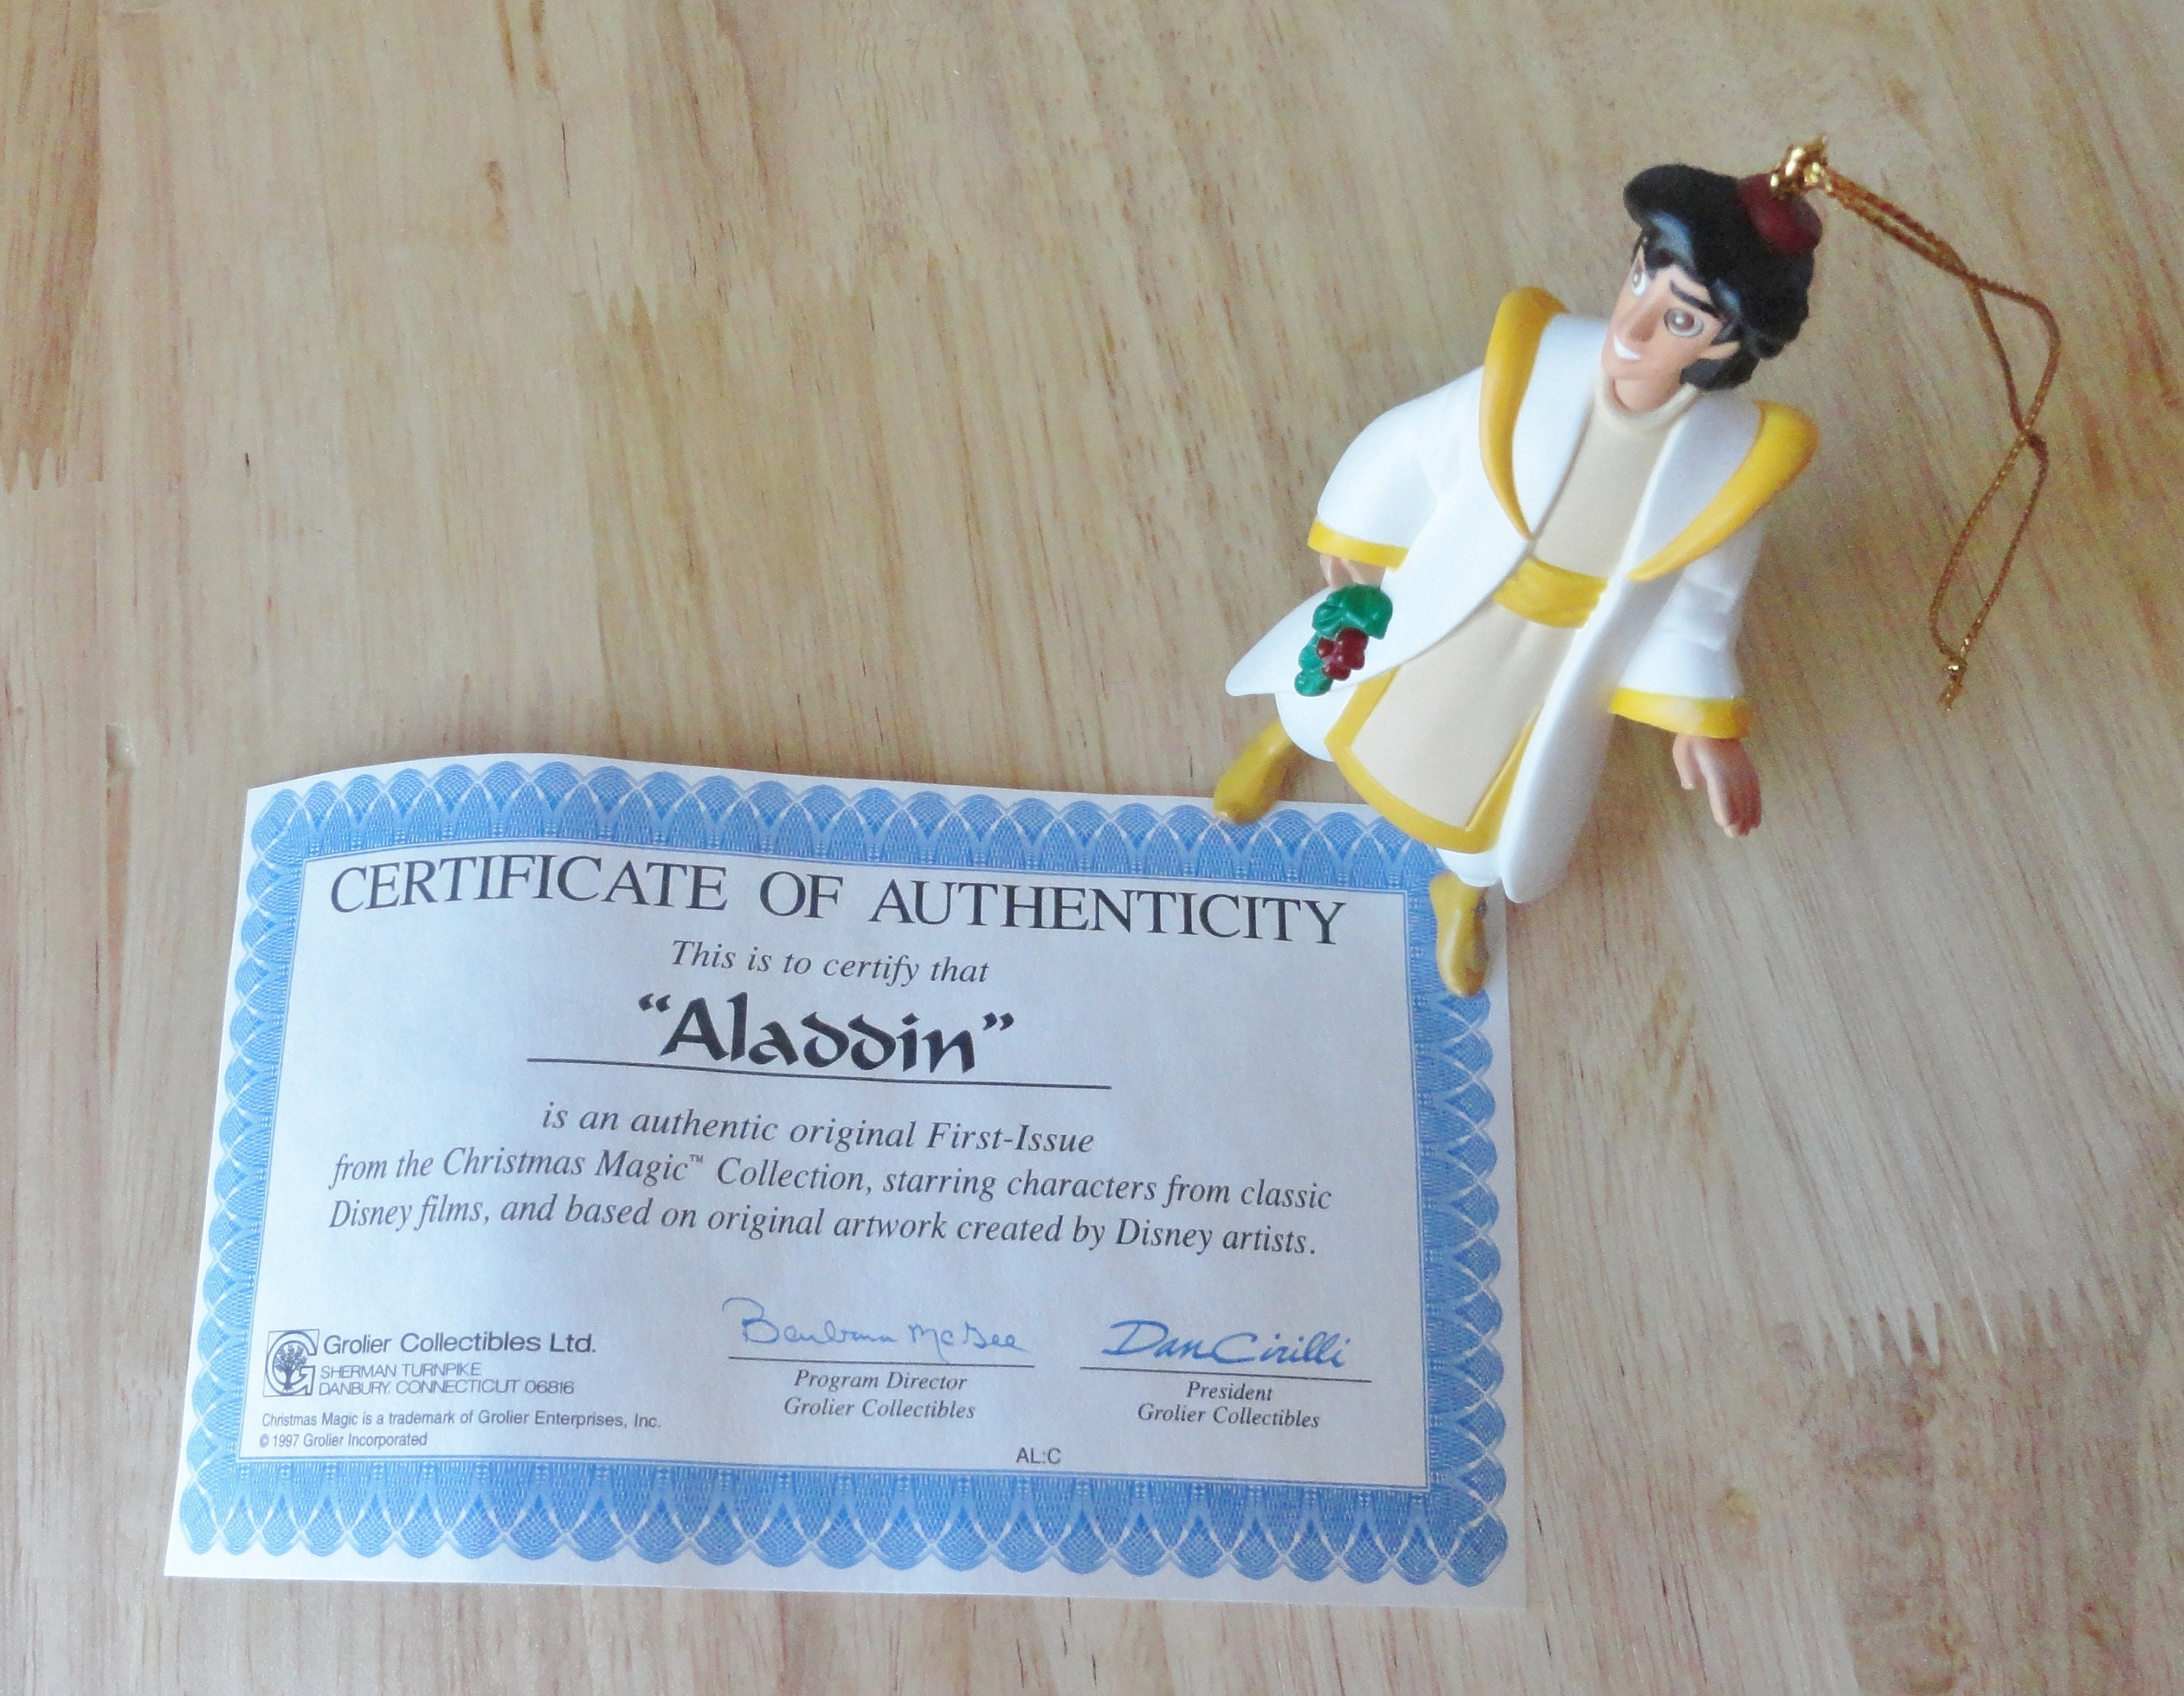 First Issue Vintage Christmas Collectable Disney S Aladdin The King Of Thieves Aladdin Ornament Grolier